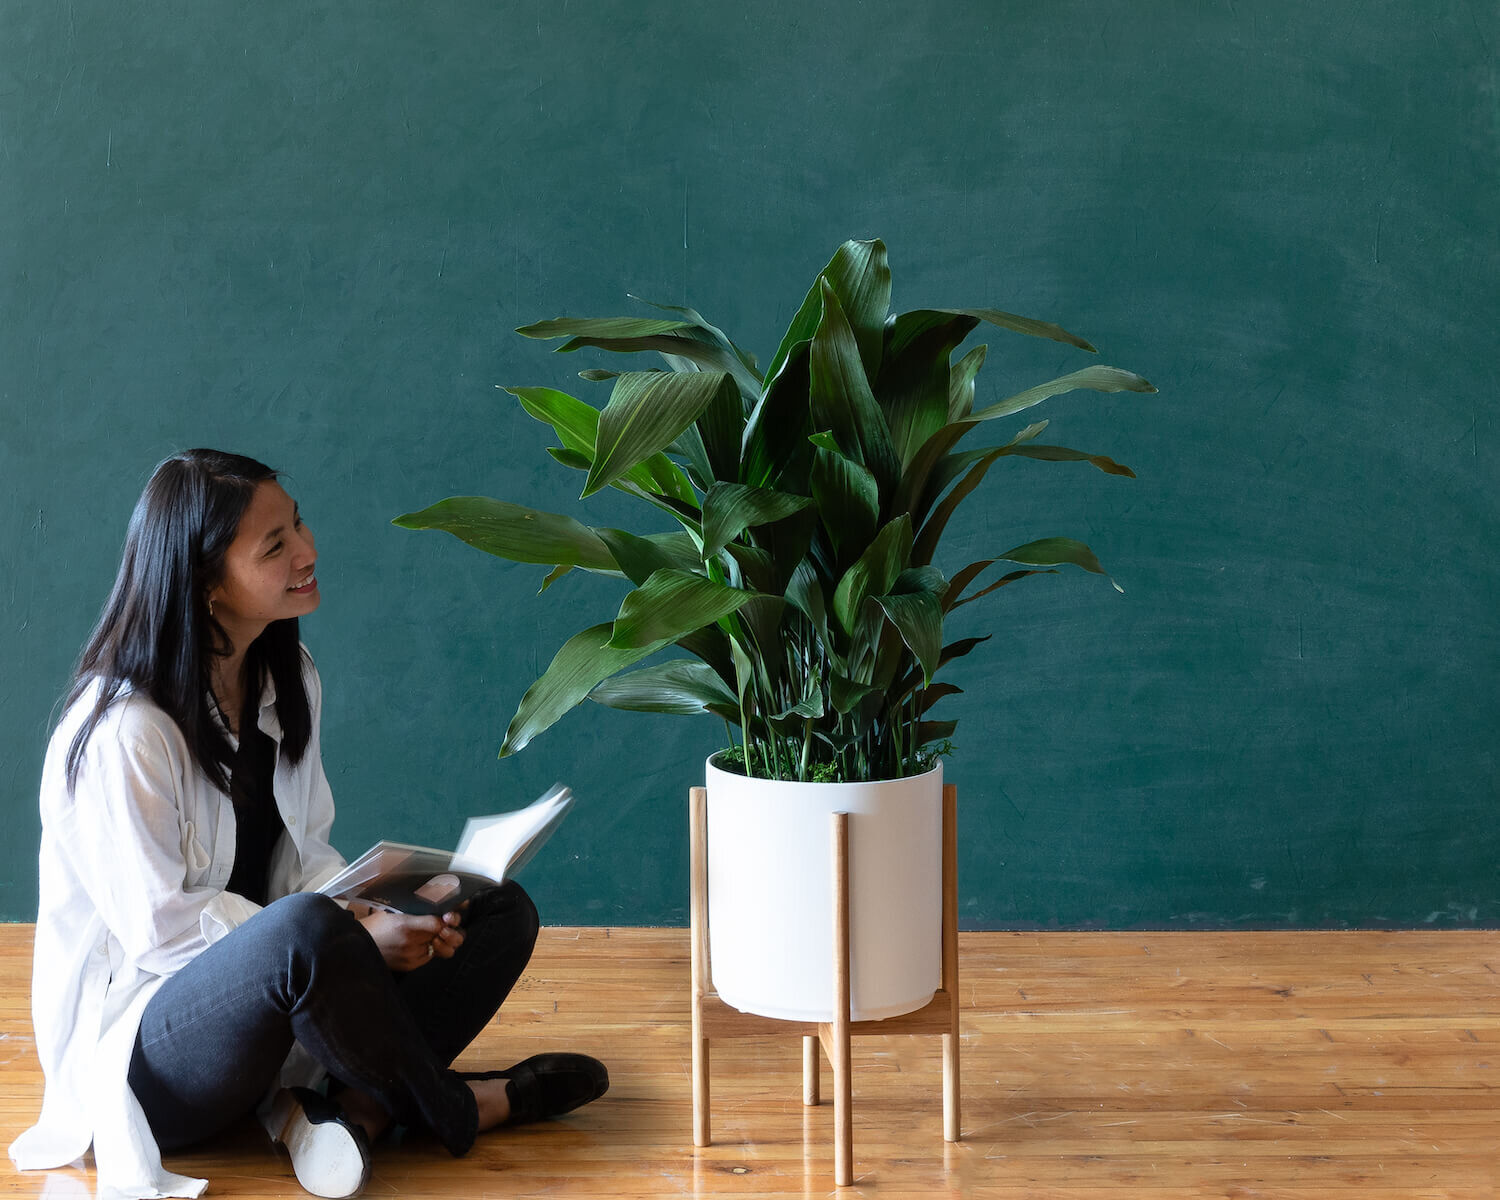 How to choose the right plants for your space